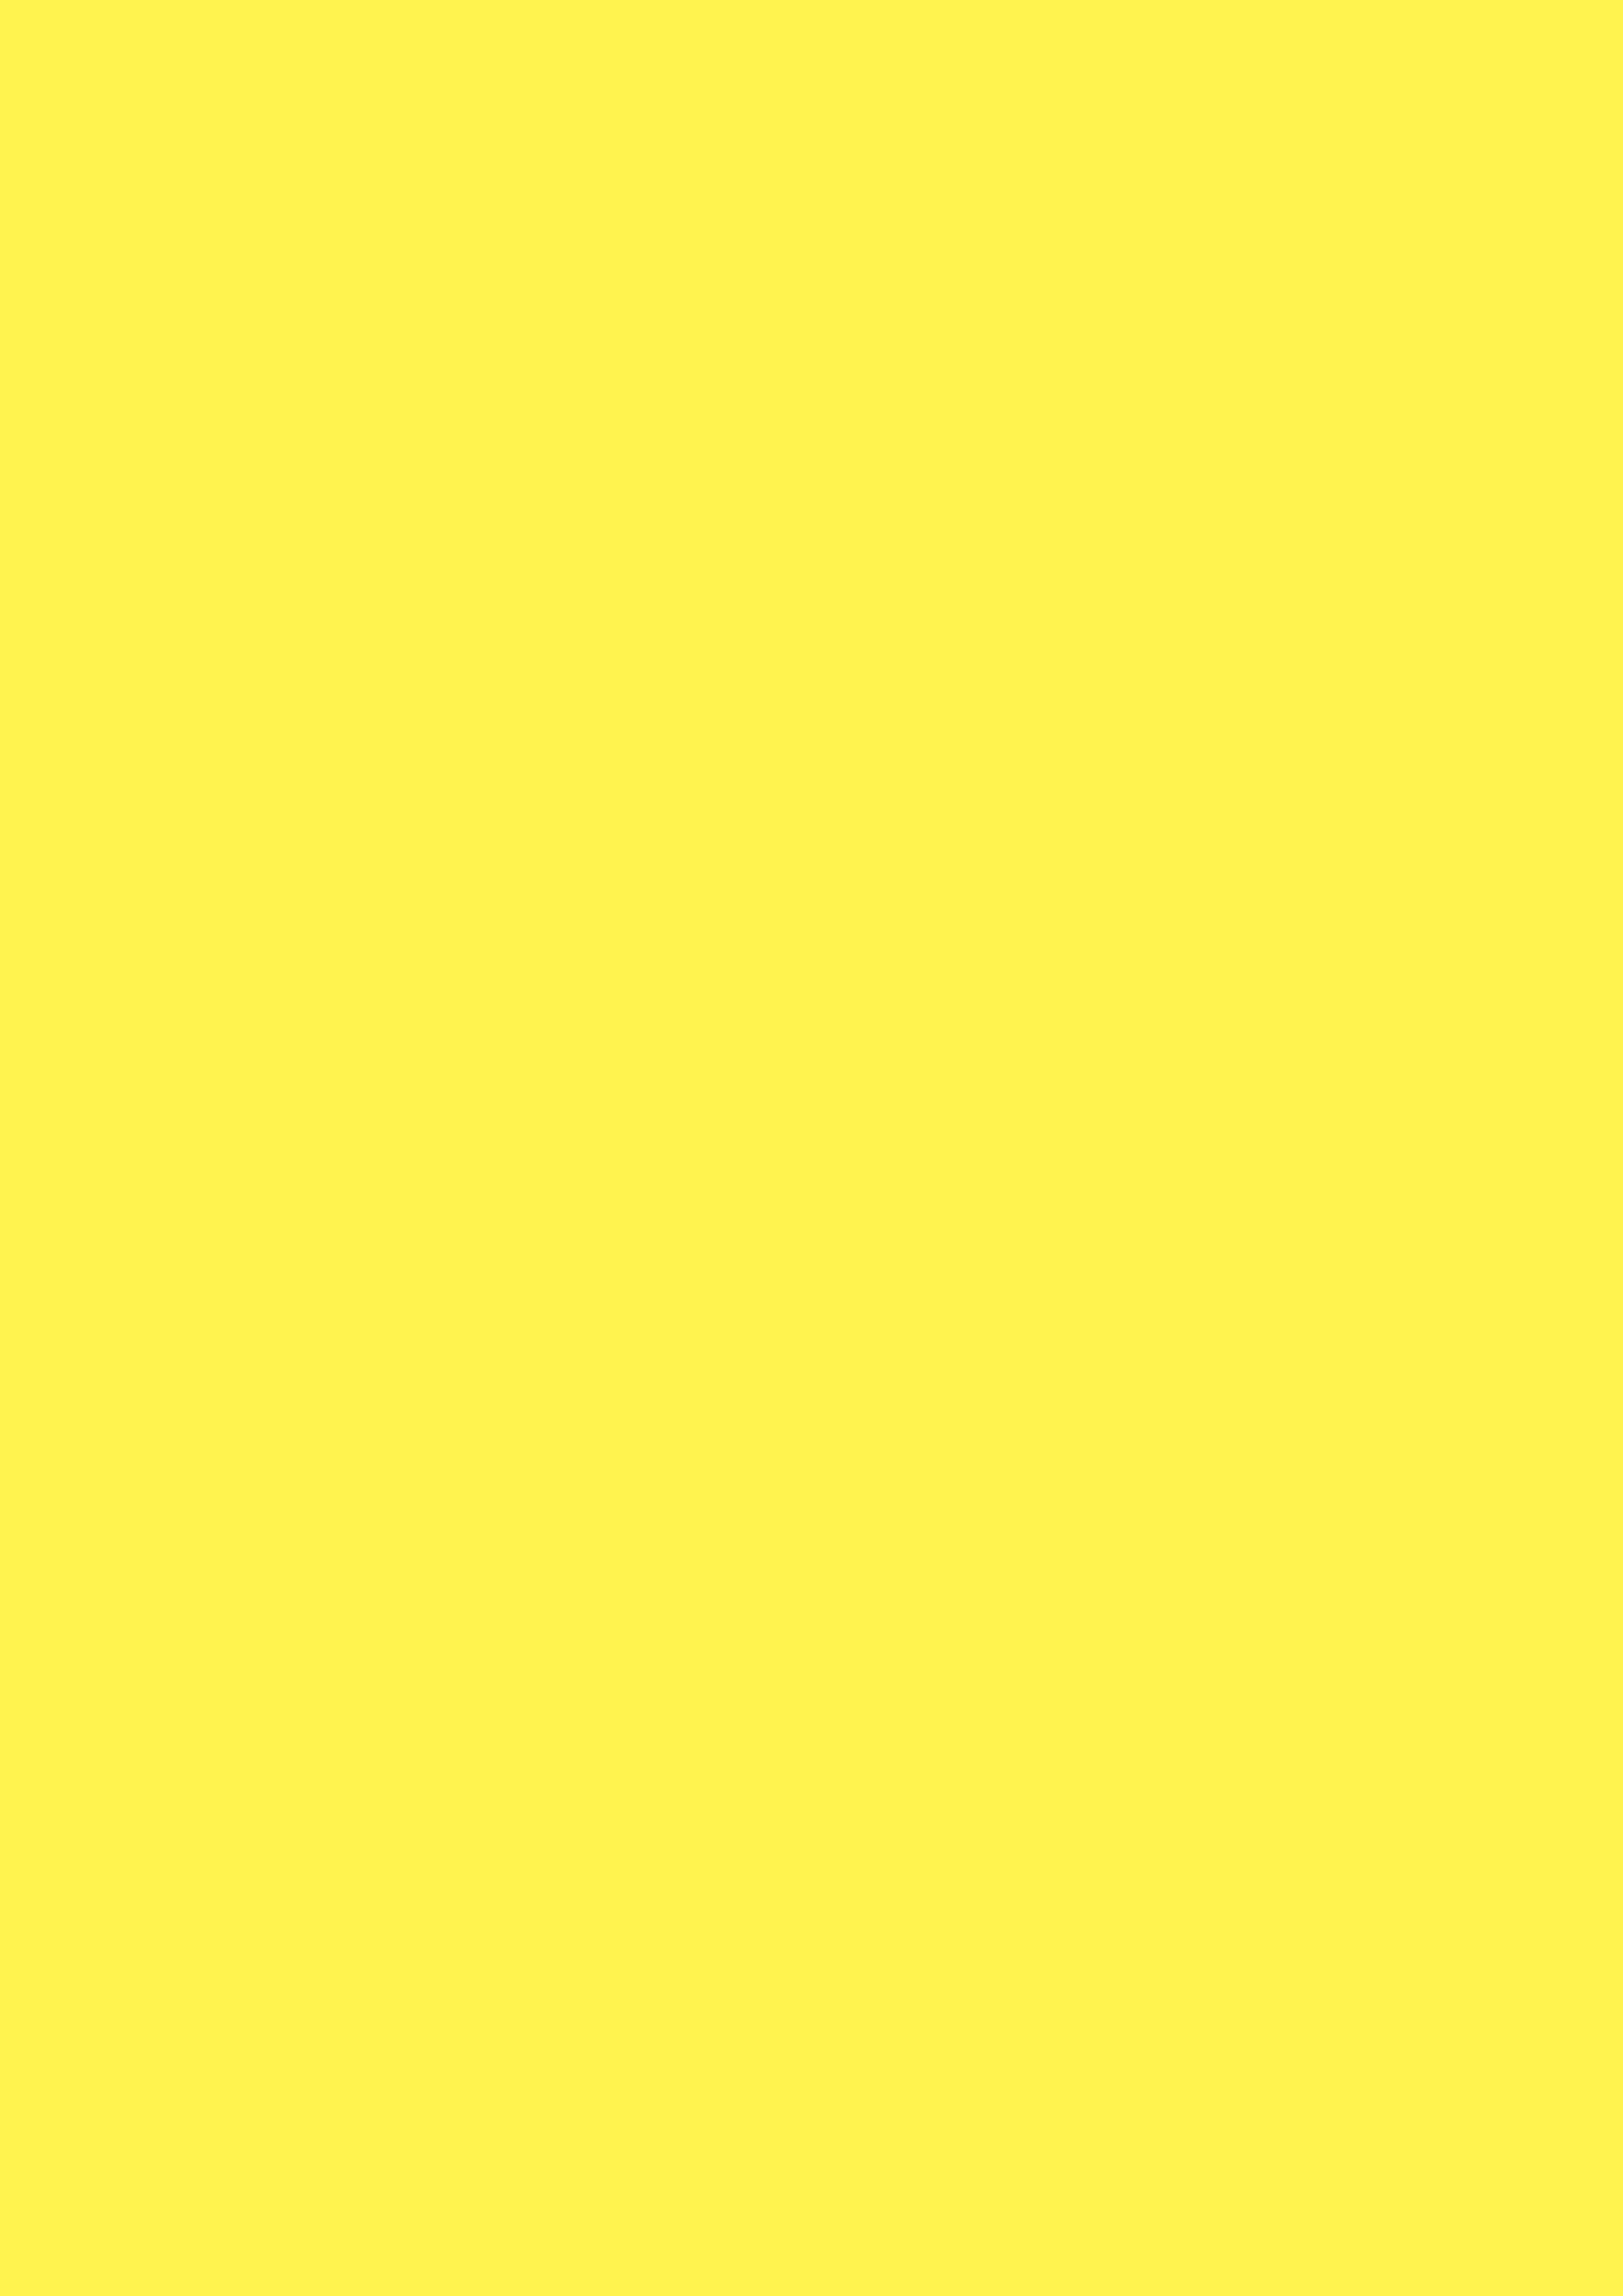 2480x3508 Lemon Yellow Solid Color Background